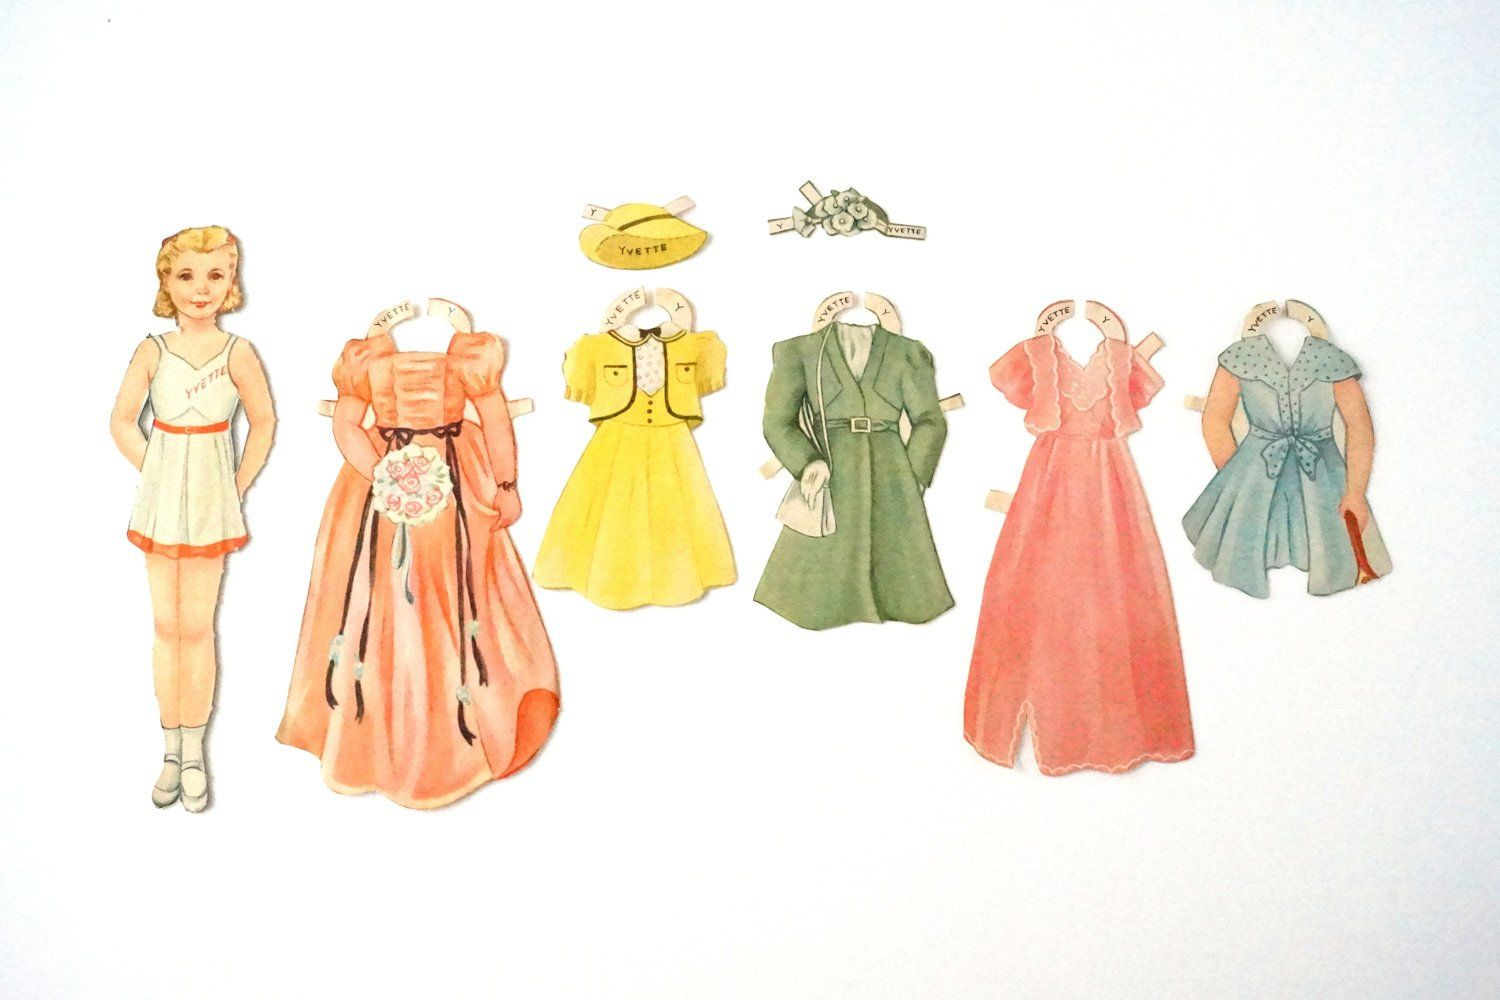 Vintage Paper Doll Set With Mother Child And Clothing 1940s Vintage Paper Doll Paper Dolls Doll Sets